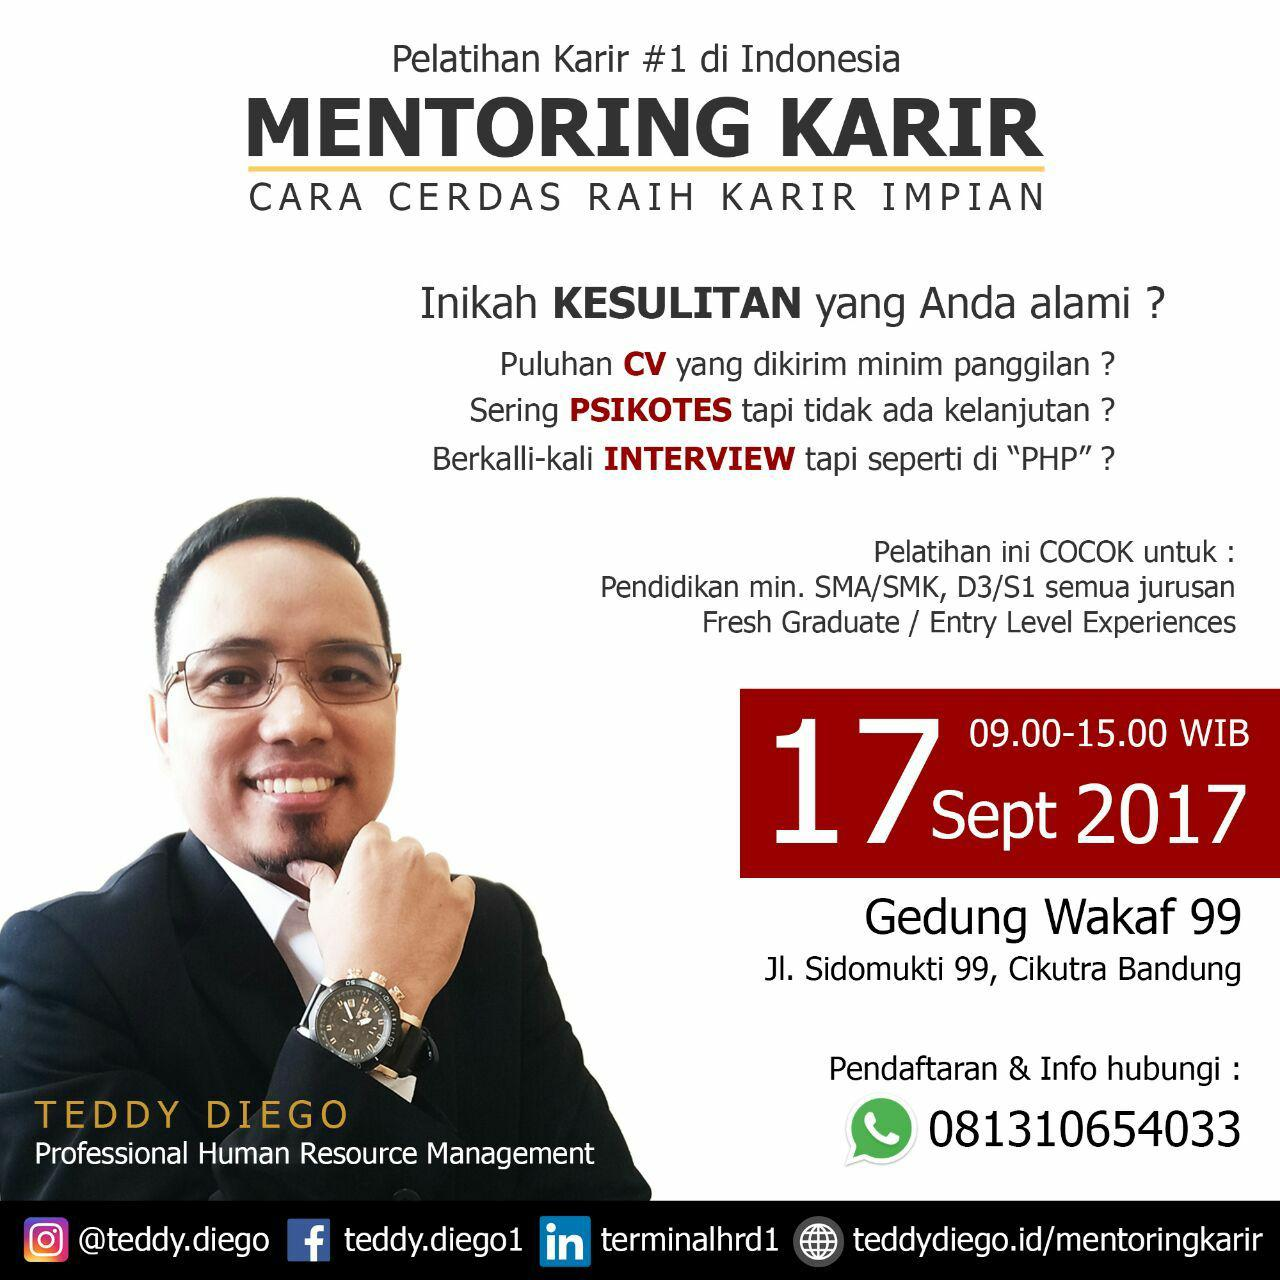 Mentoring Karir 17 September 2017 Teddy Diego ( Professional Human Resource Management )